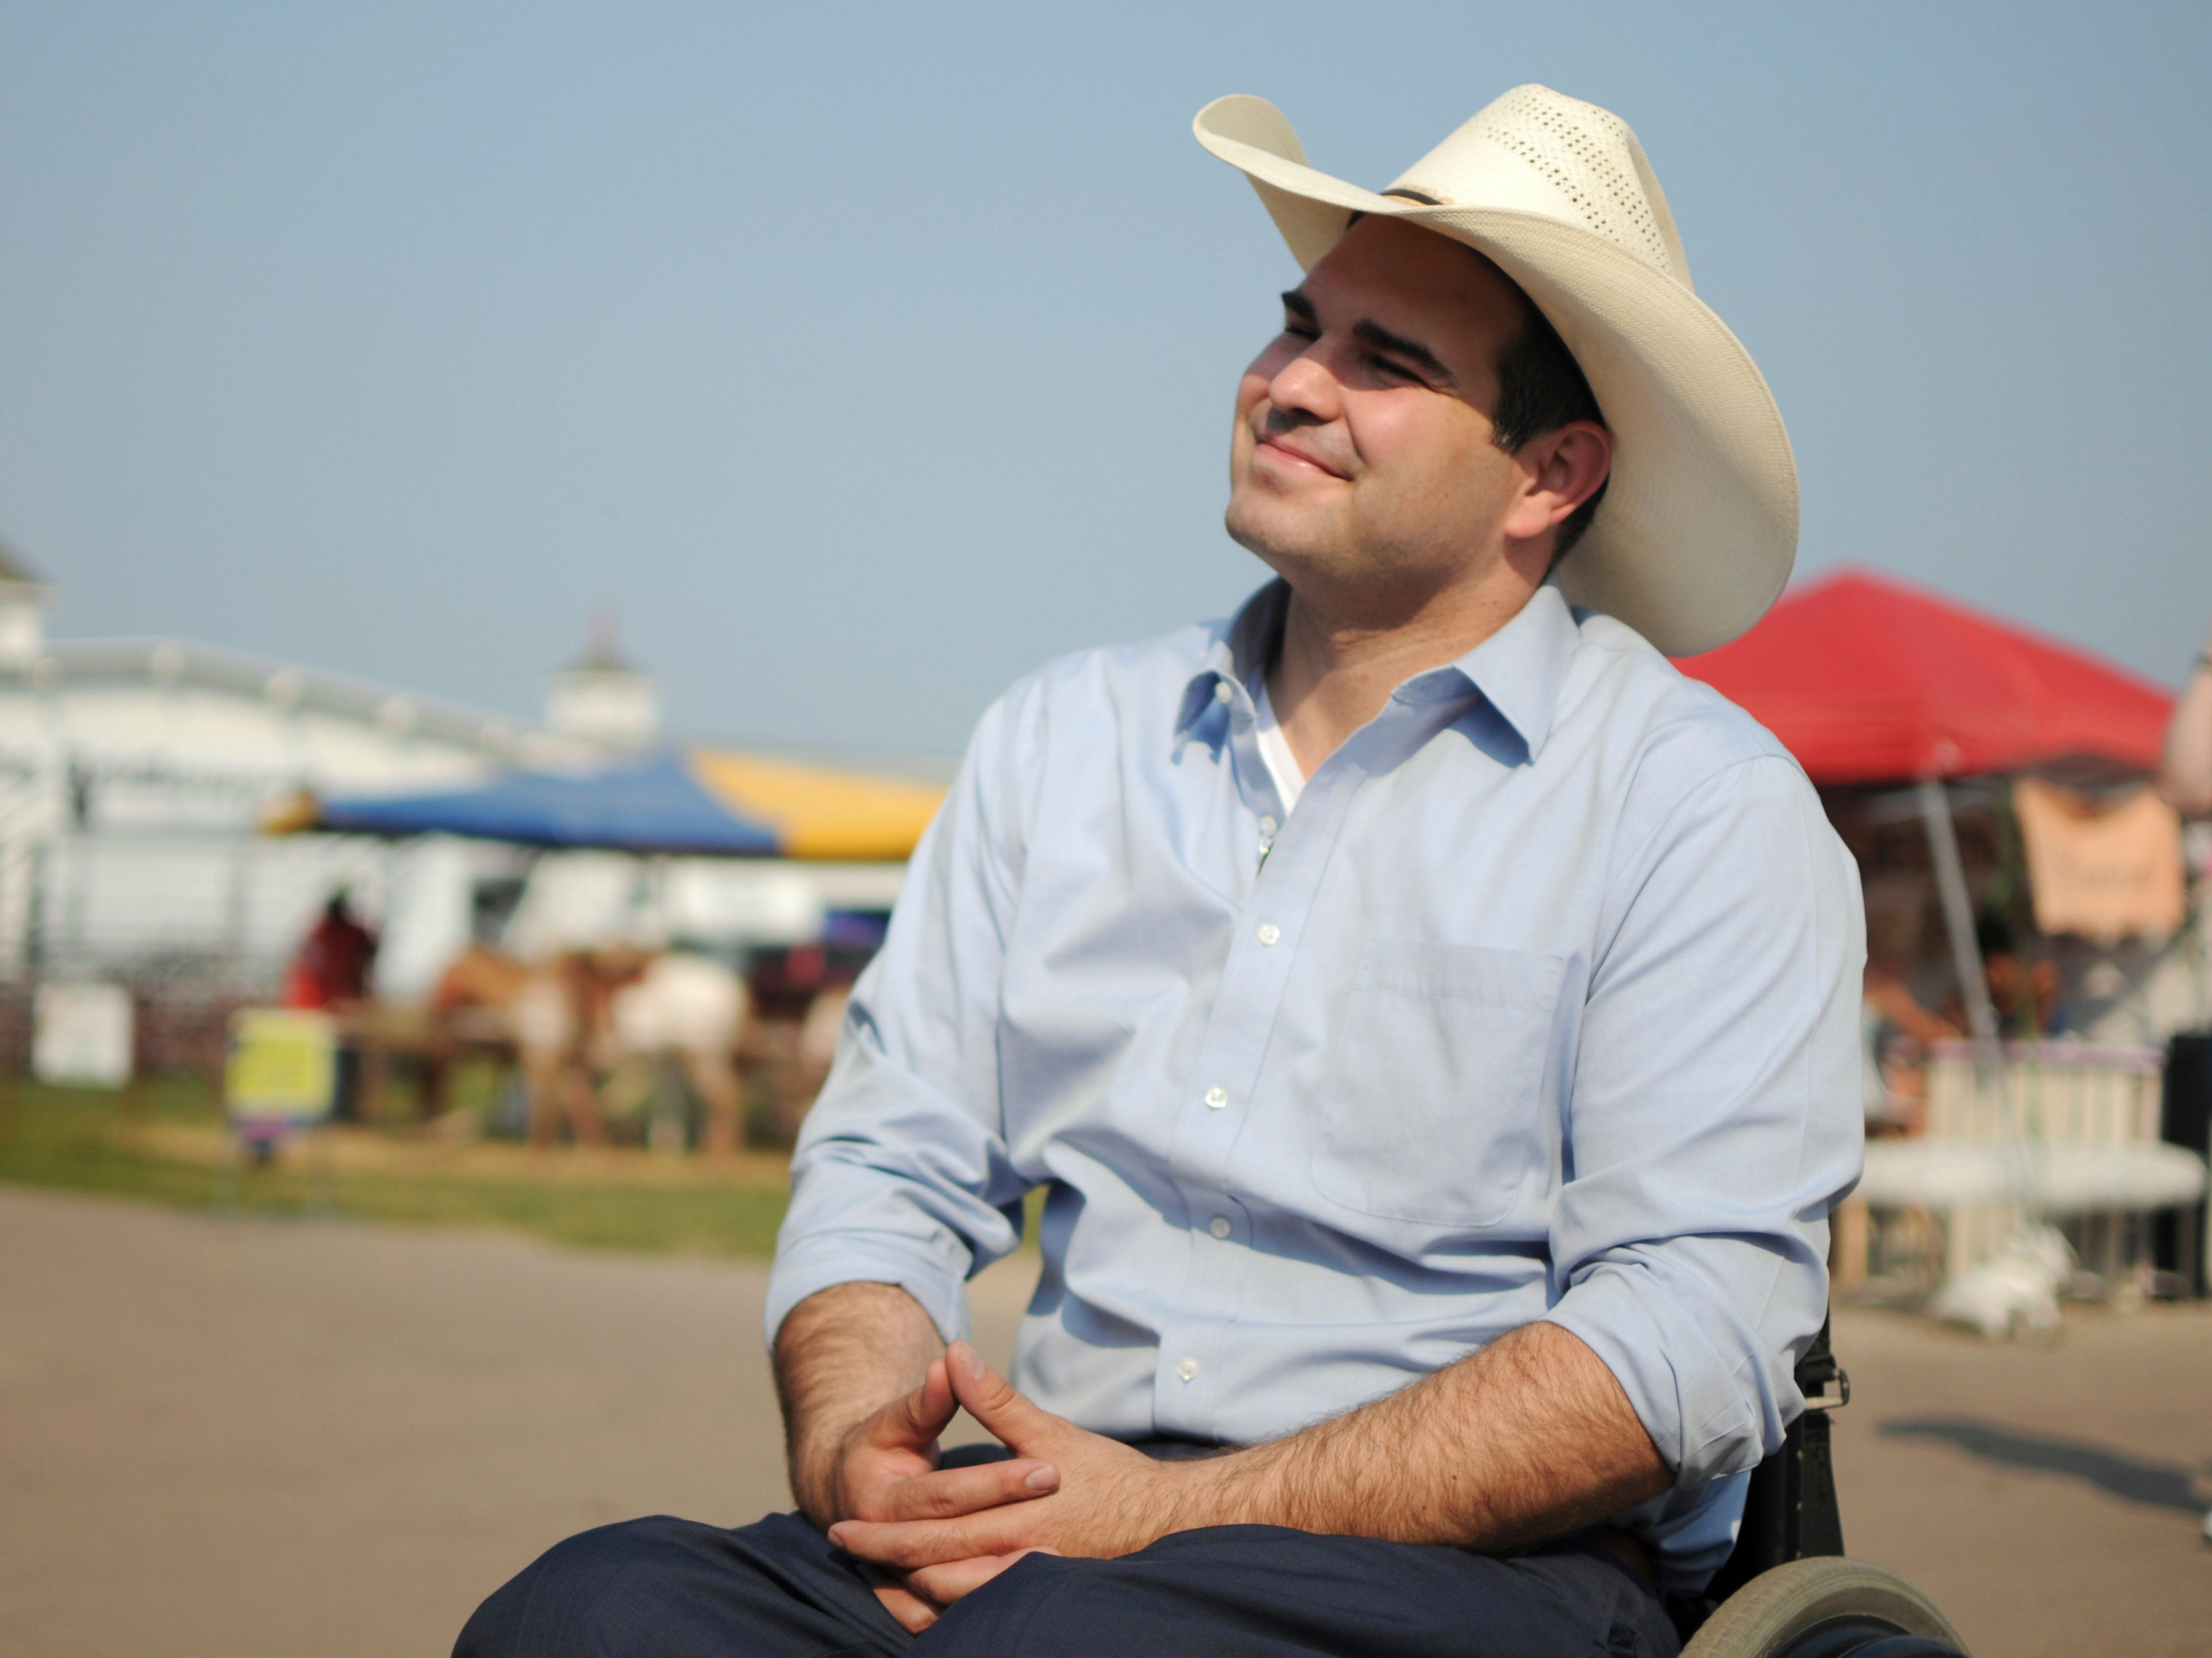 In this Aug. 10, 2018, photo, Democratic governor candidate Billie Sutton campaigns at a fair in Sioux Falls, S.D. Sutton is seeking to become the first Democrat elected South Dakota governor in over four decades. (AP Photo/James Nord)